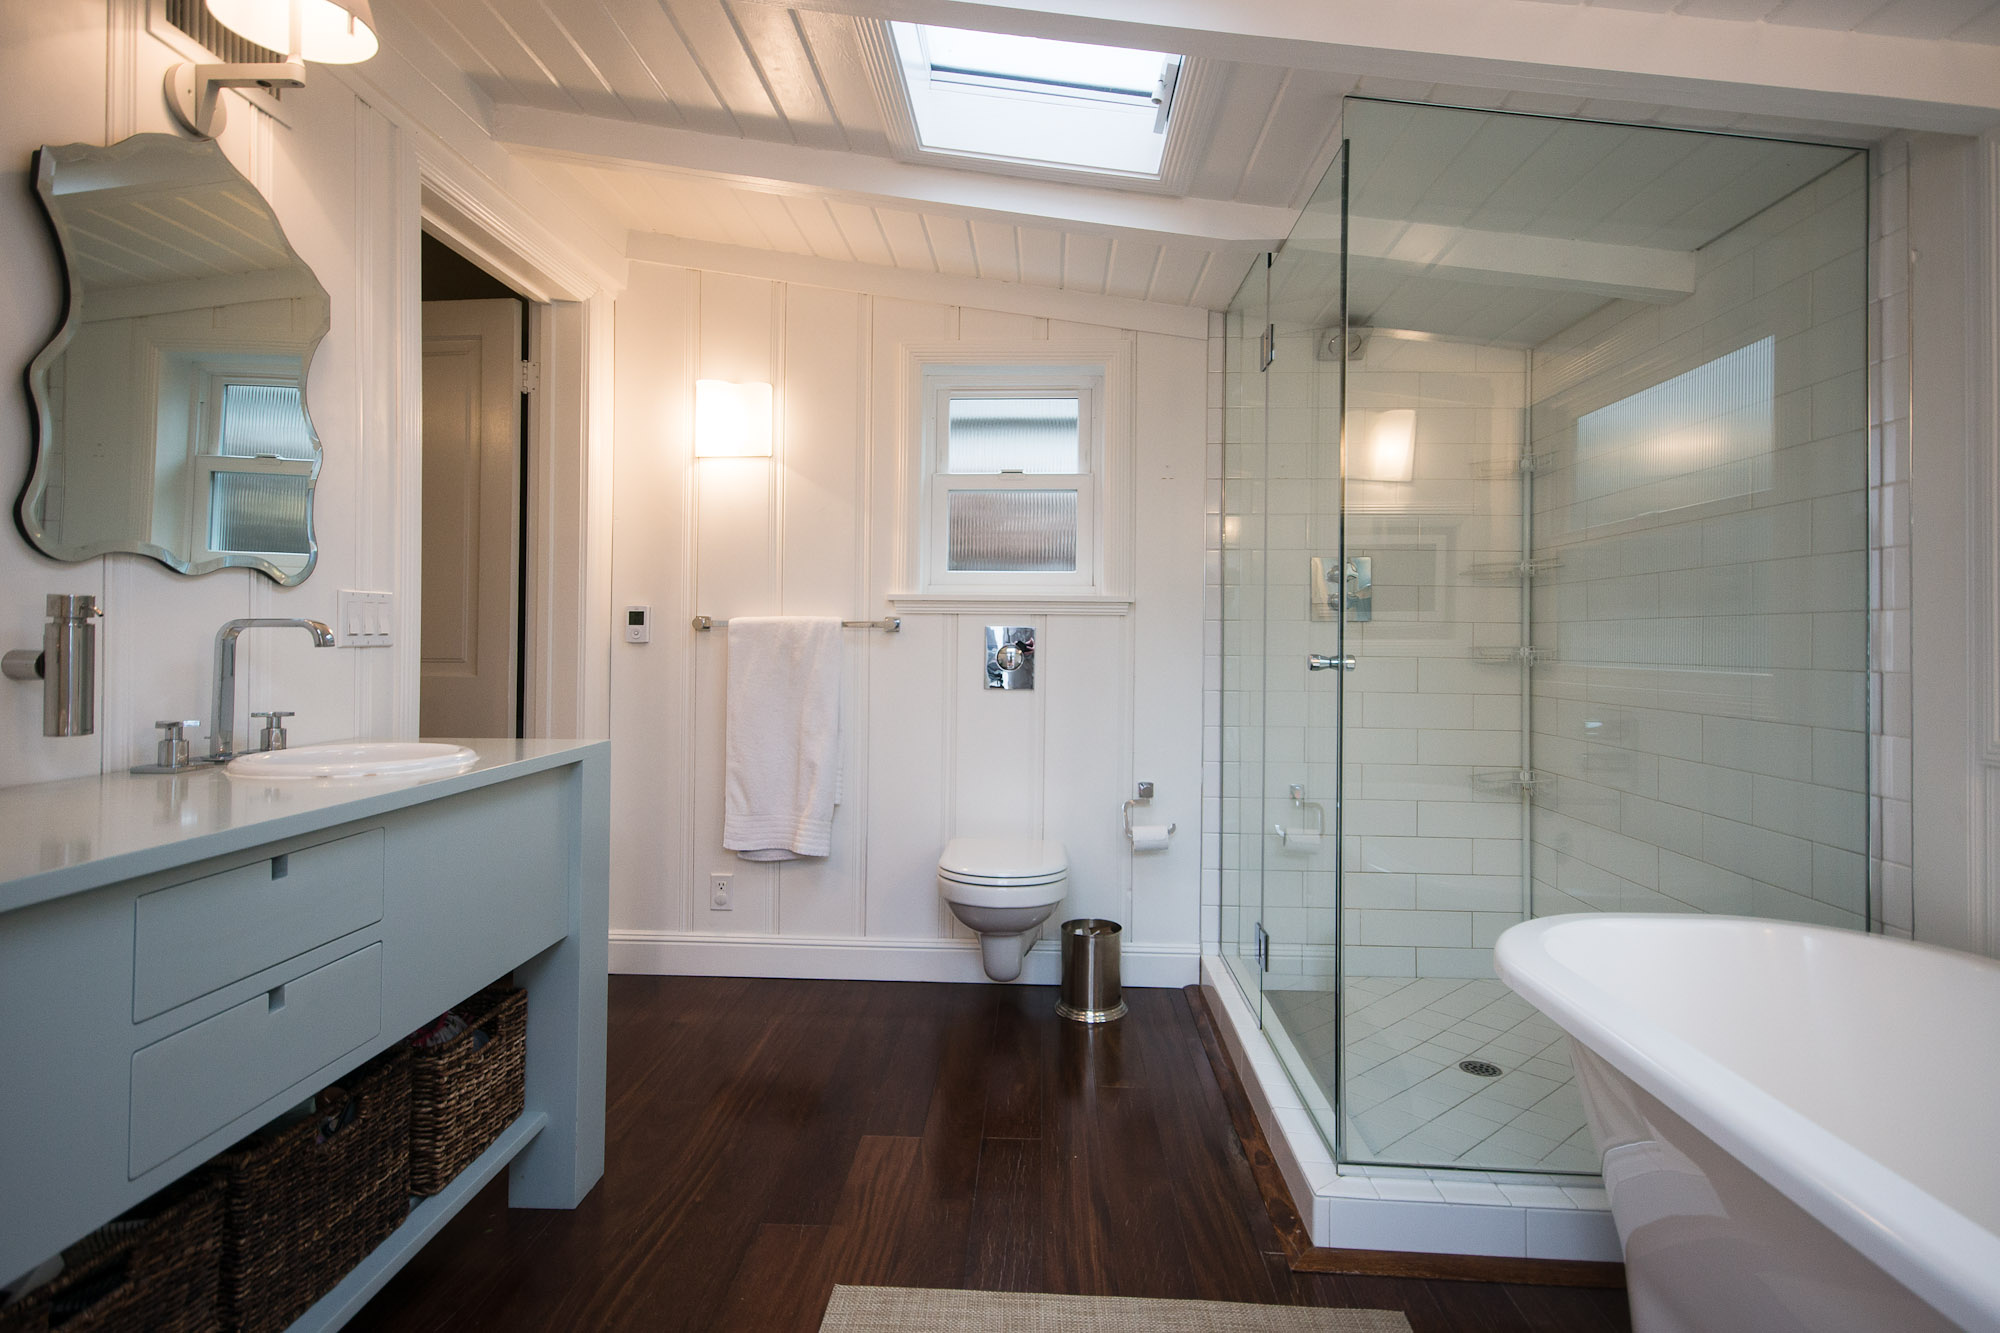 20140303-Master Bathroom 2.jpg